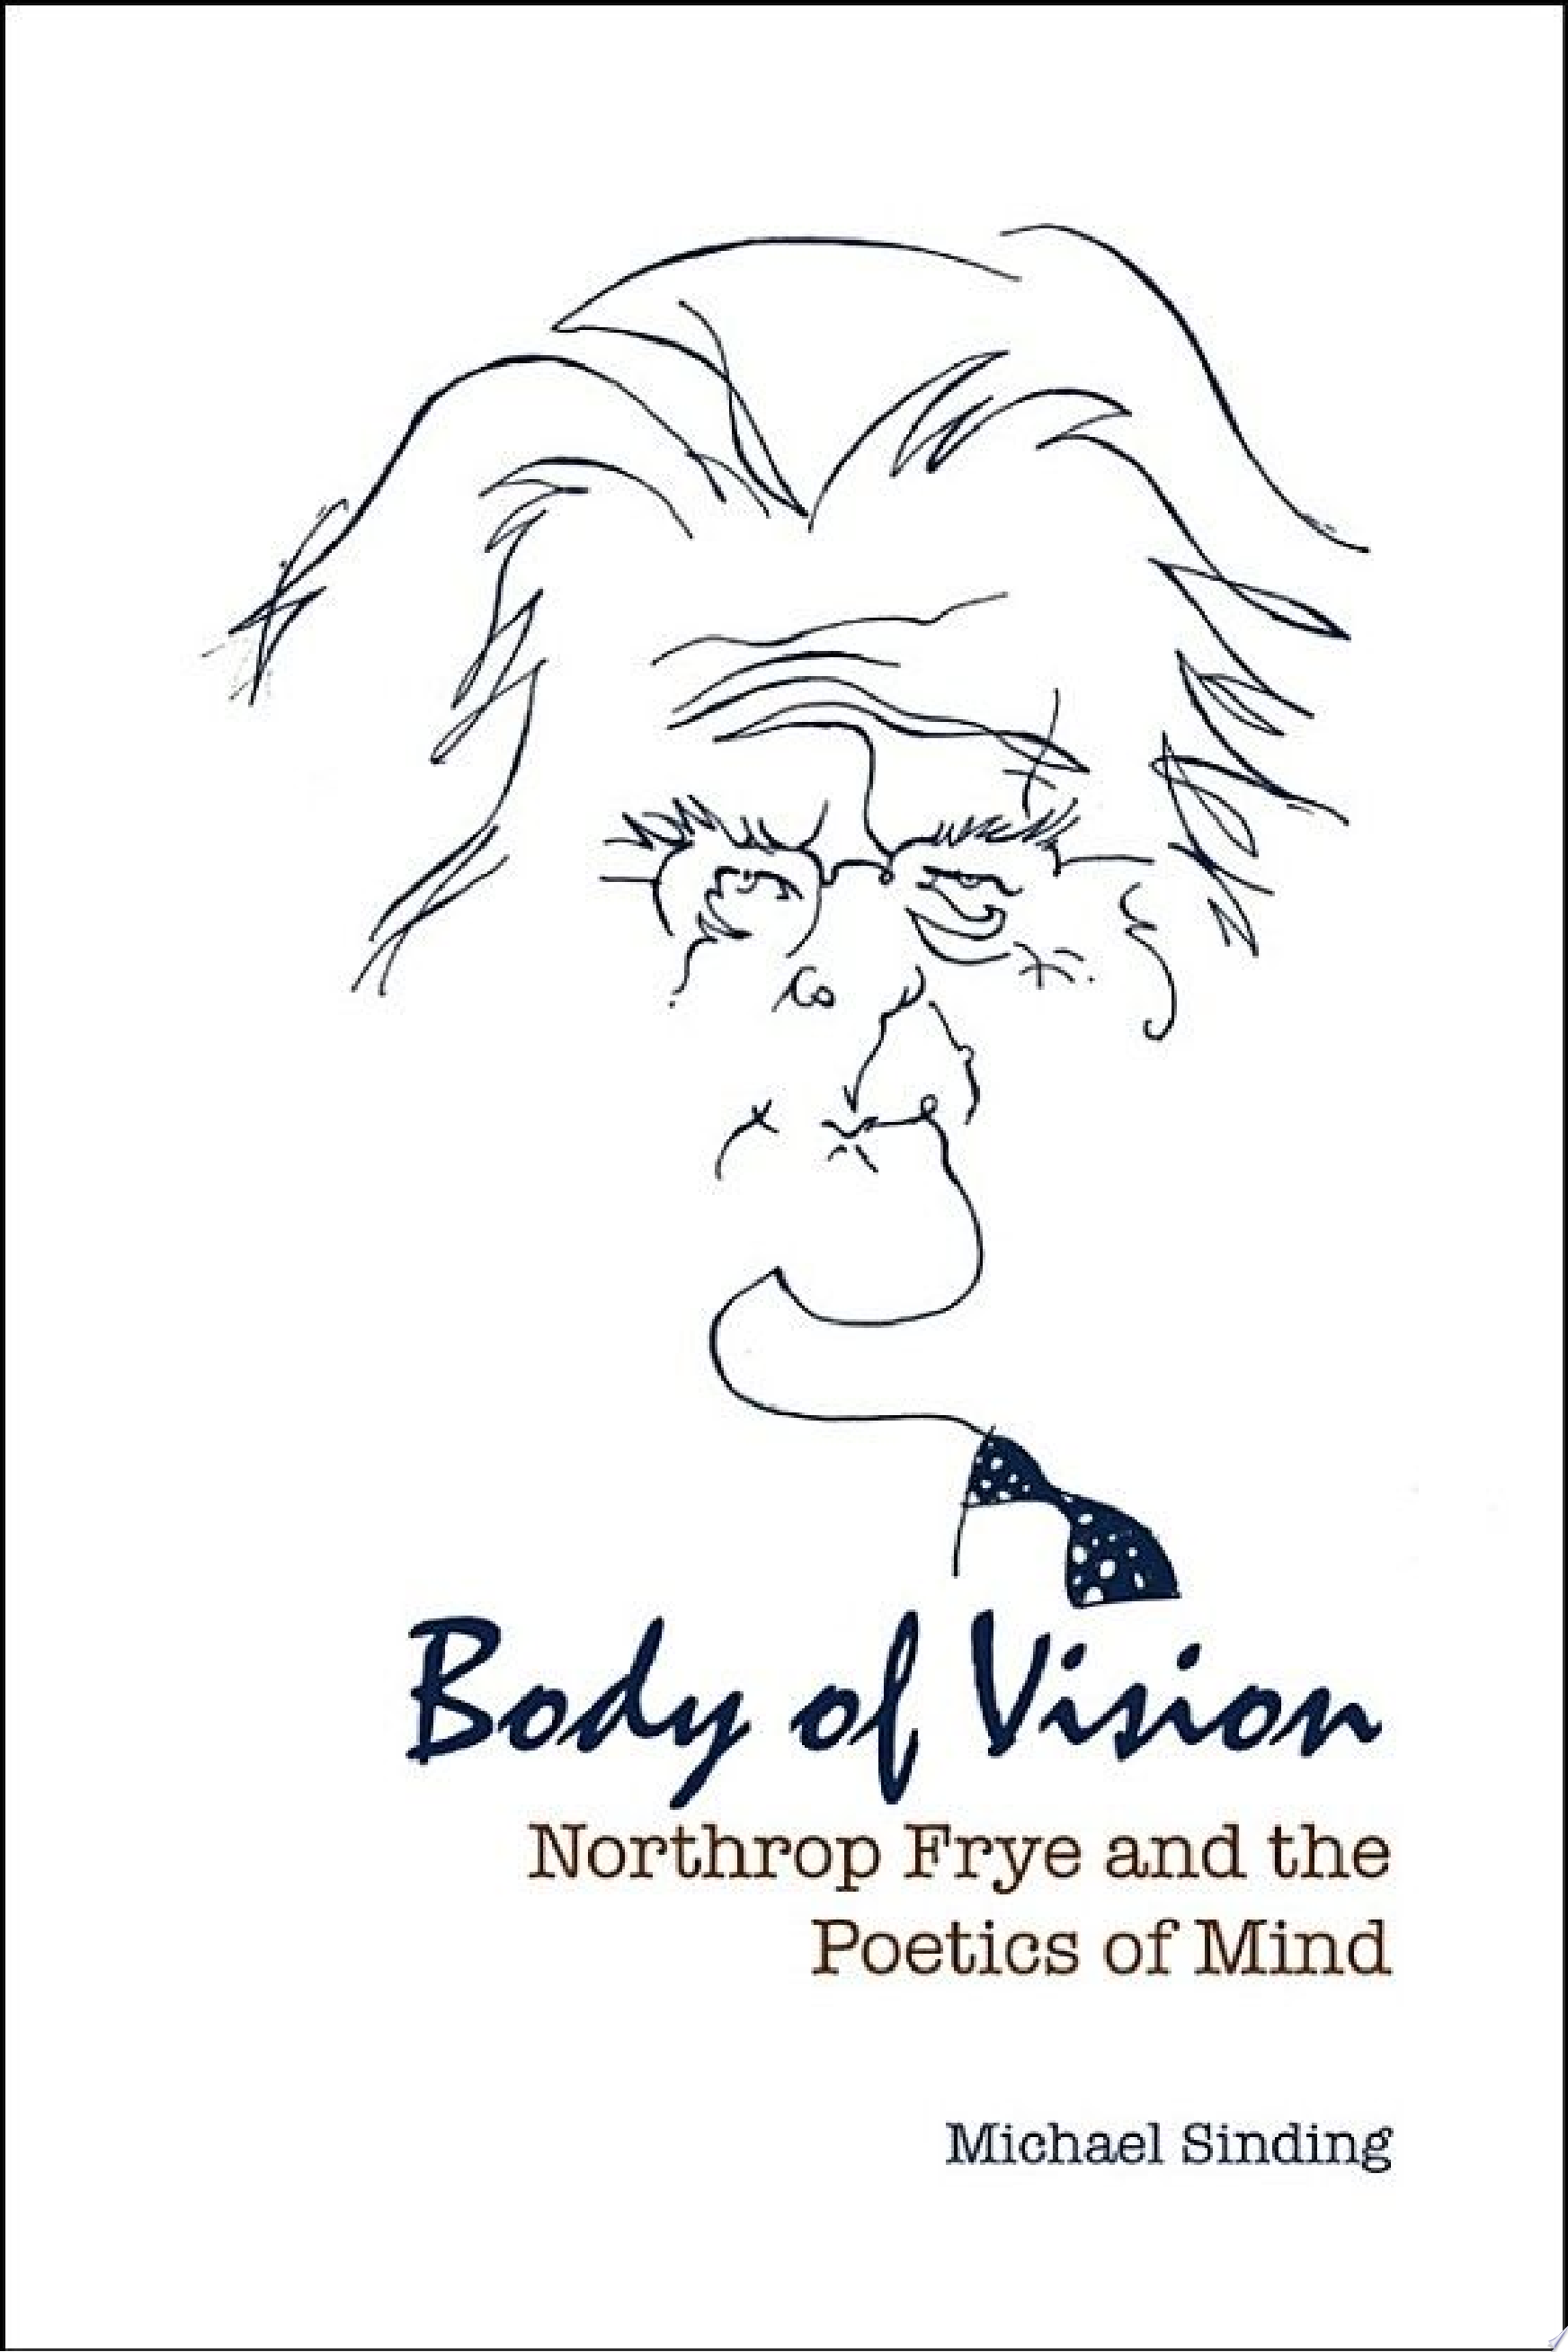 Body of Vision